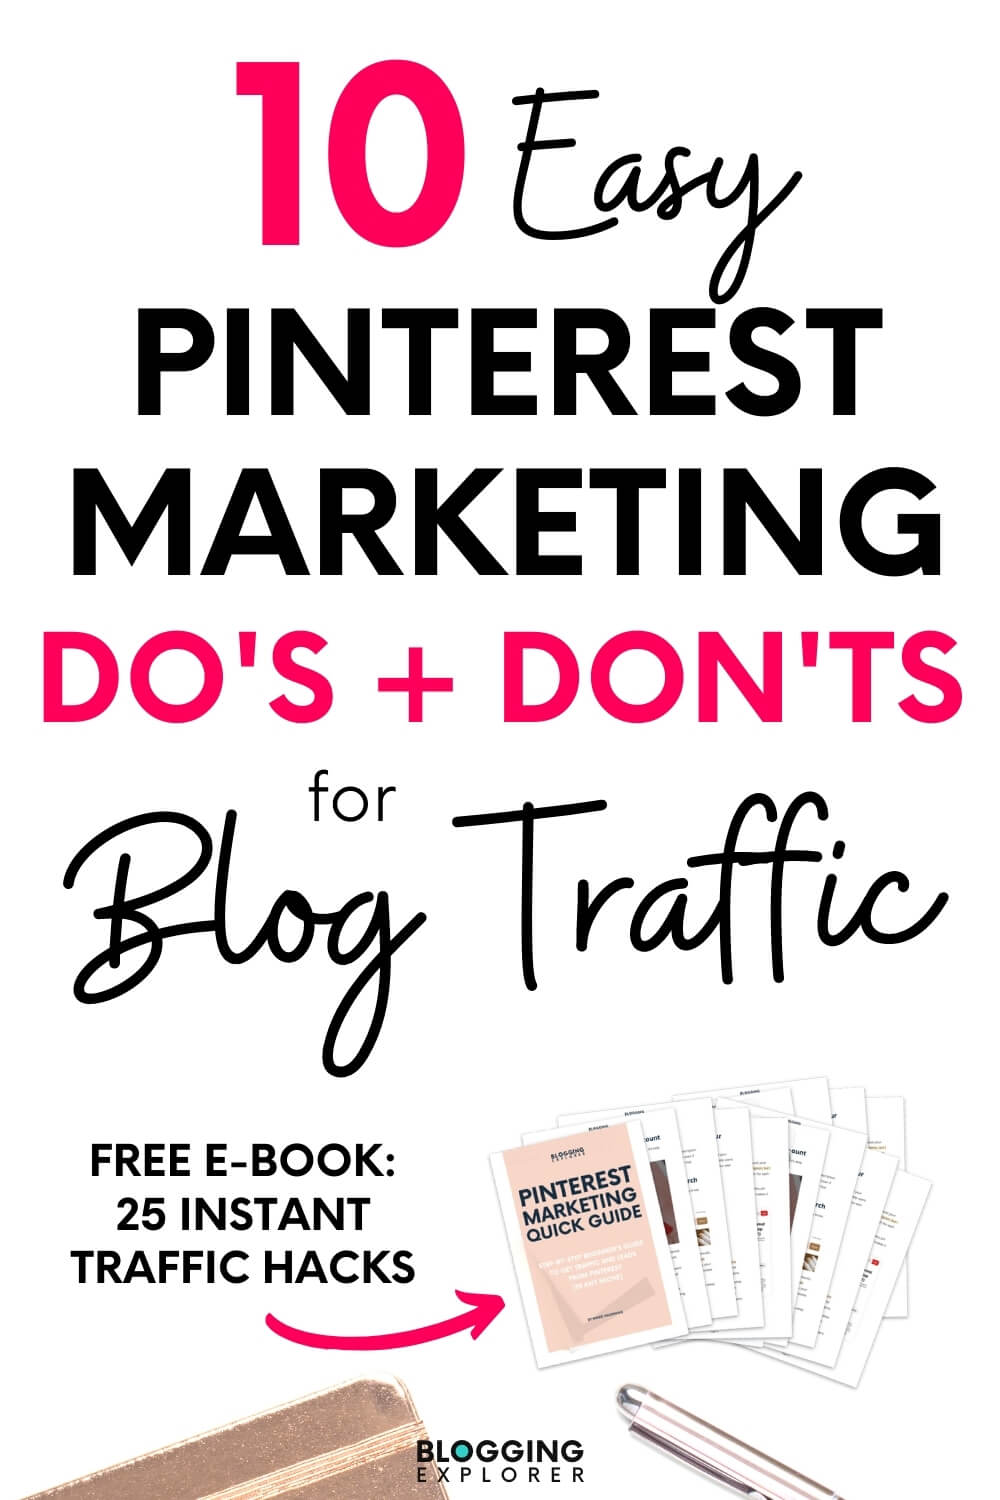 10 quick and easy Pinterest marketing dos and donts to grow your blog traffic for free